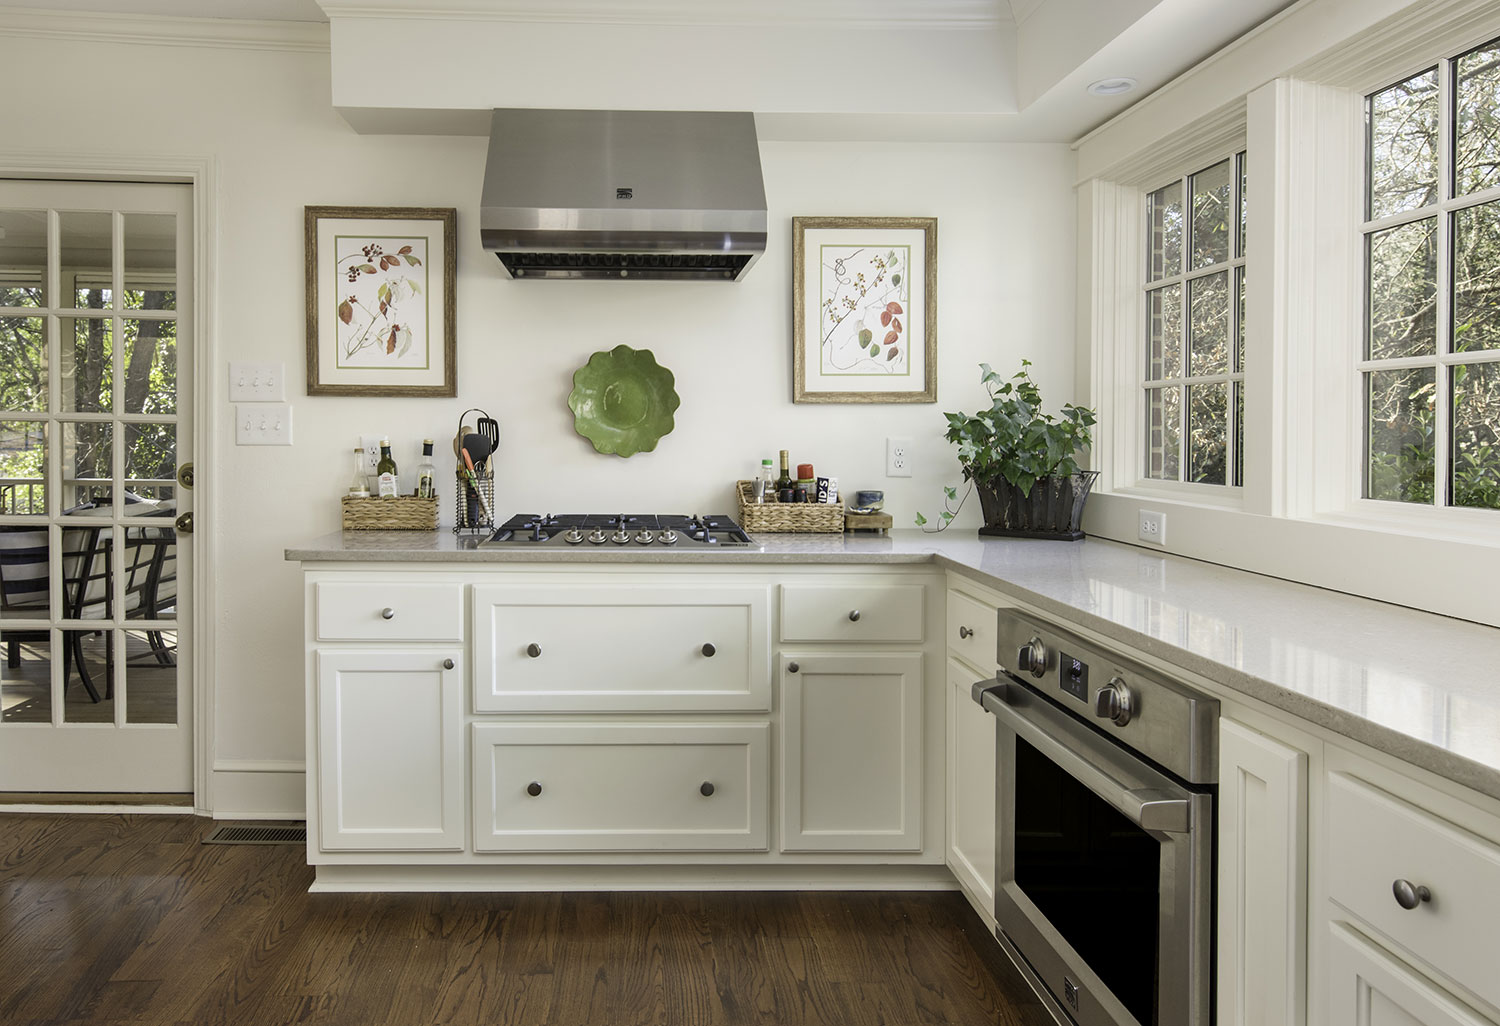 kitchen-2-300-dpi.jpg